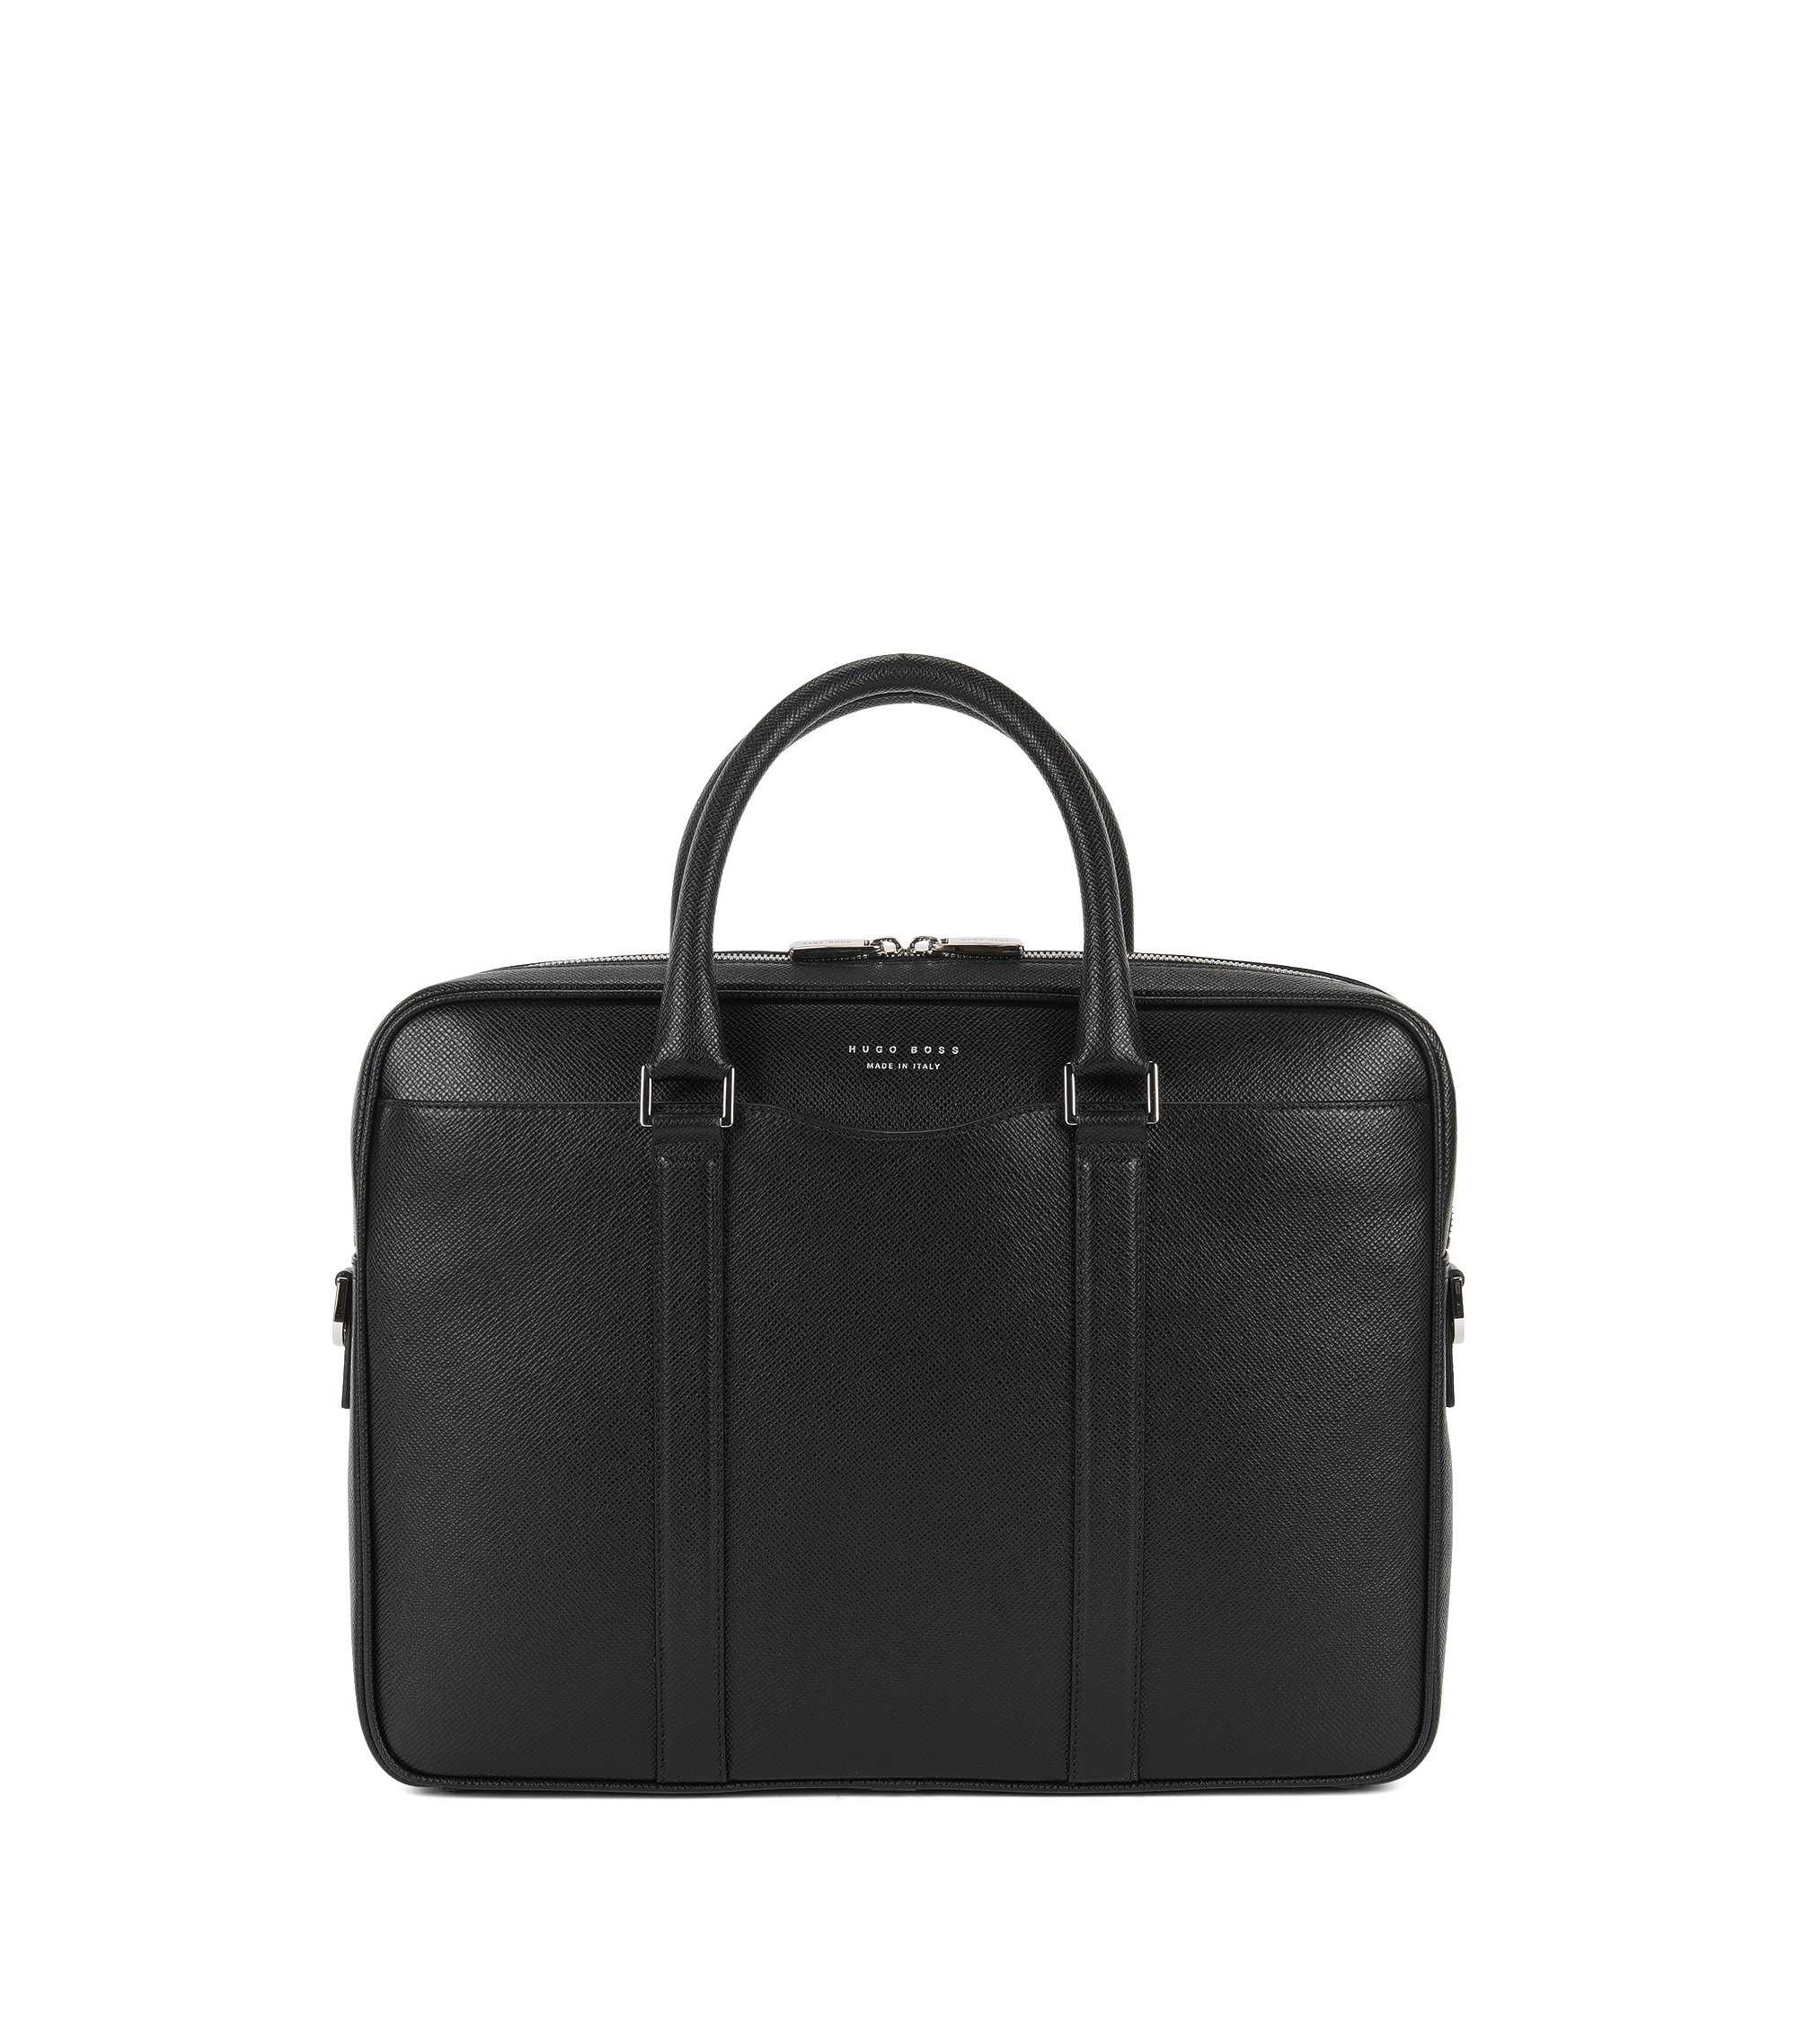 Signature Collection bag in palmellato leather, Black